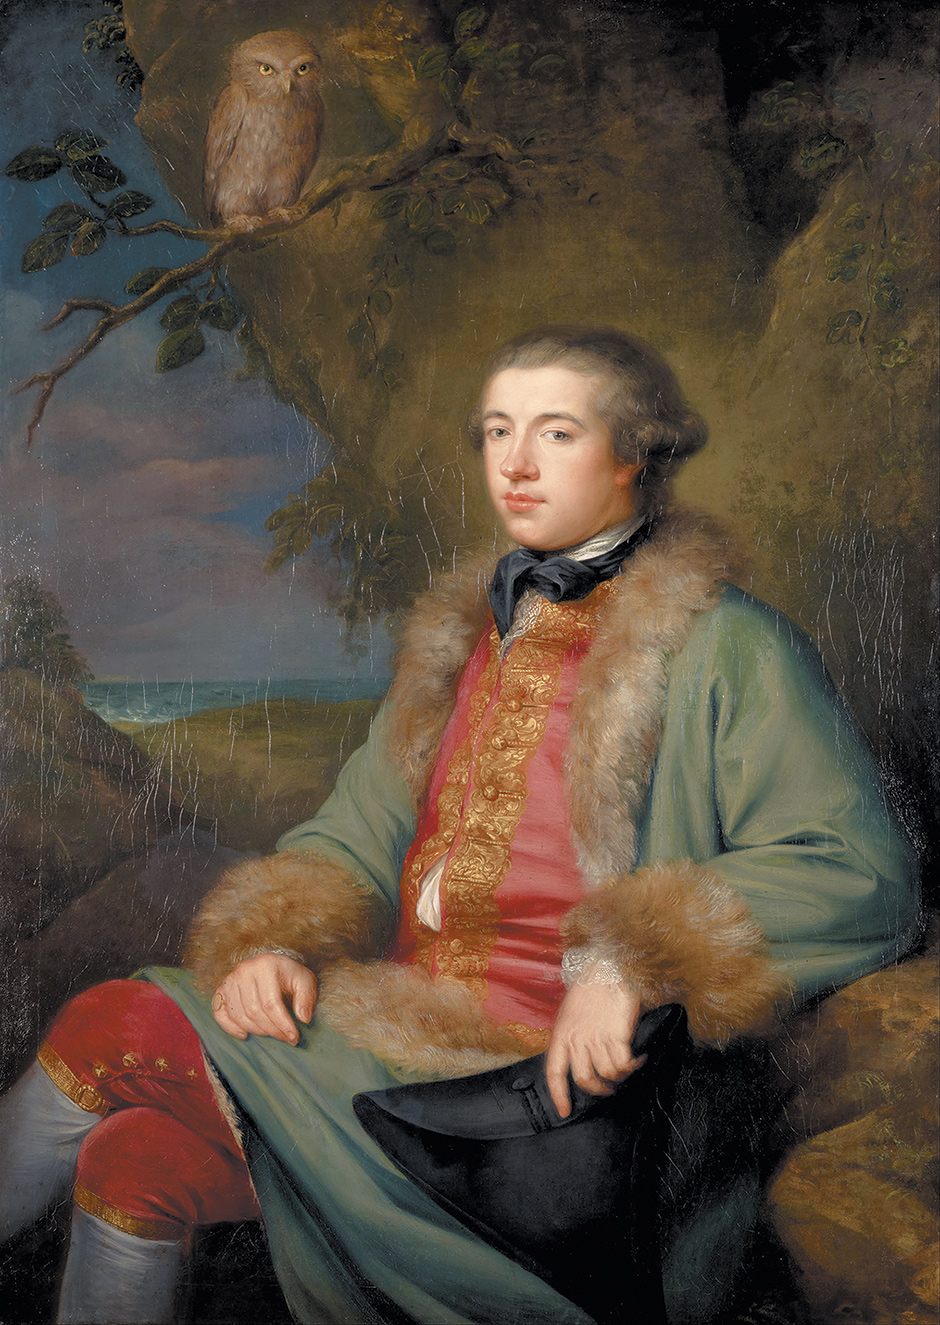 James Boswell, 1765; portrait by George Willison